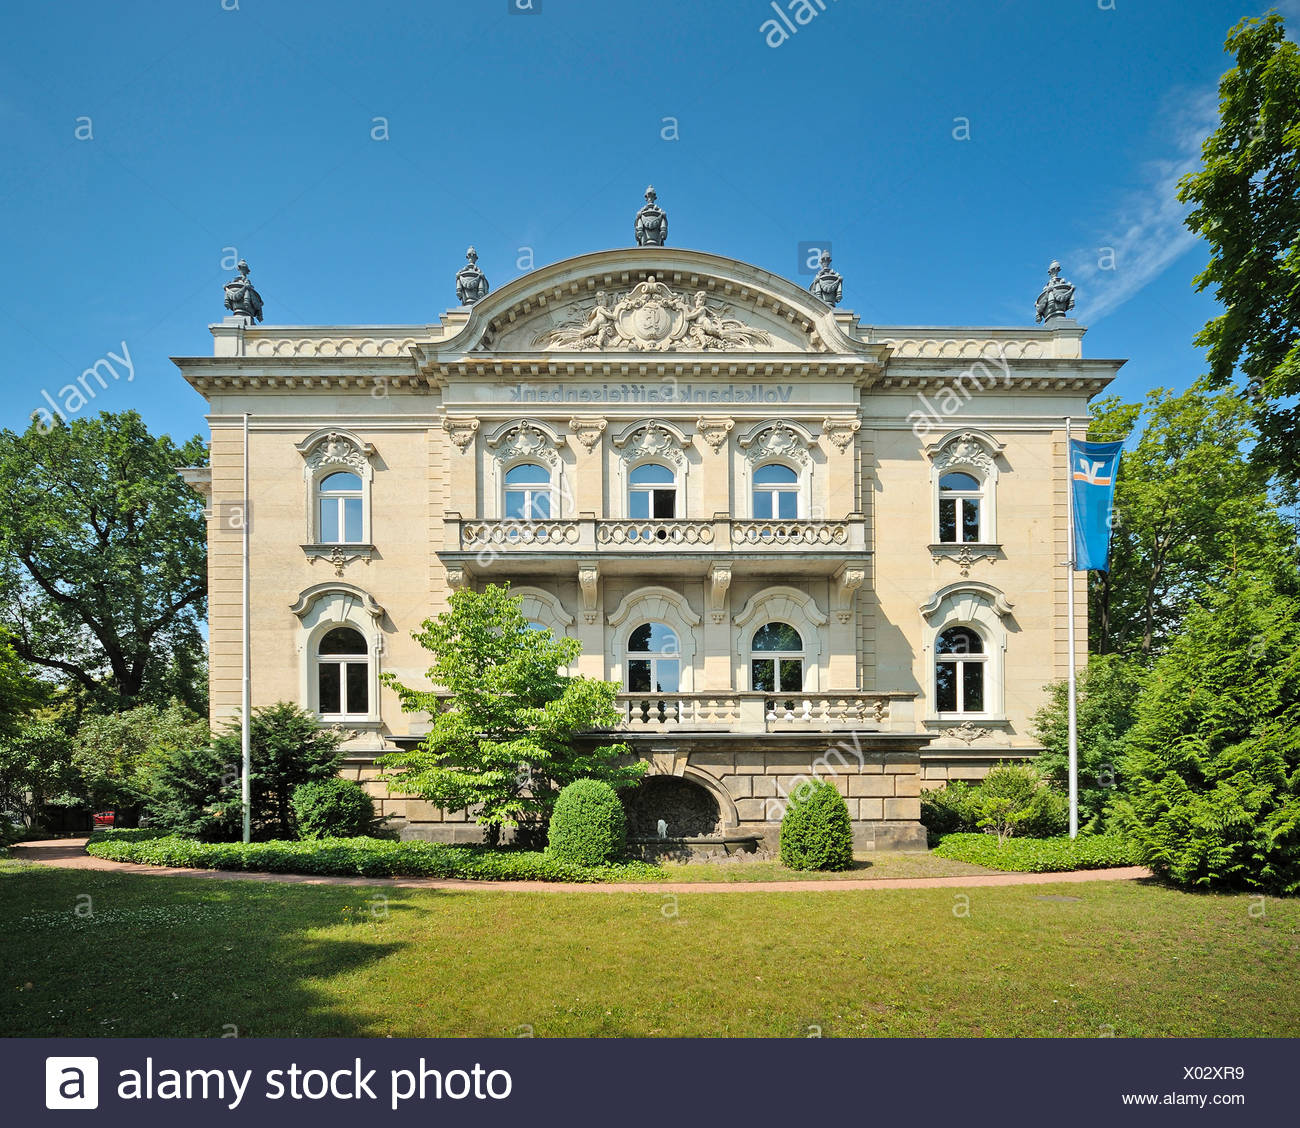 villa eschebach ein neo barocken herrenhaus sitz der vr bank dresden sachsen deutschland. Black Bedroom Furniture Sets. Home Design Ideas